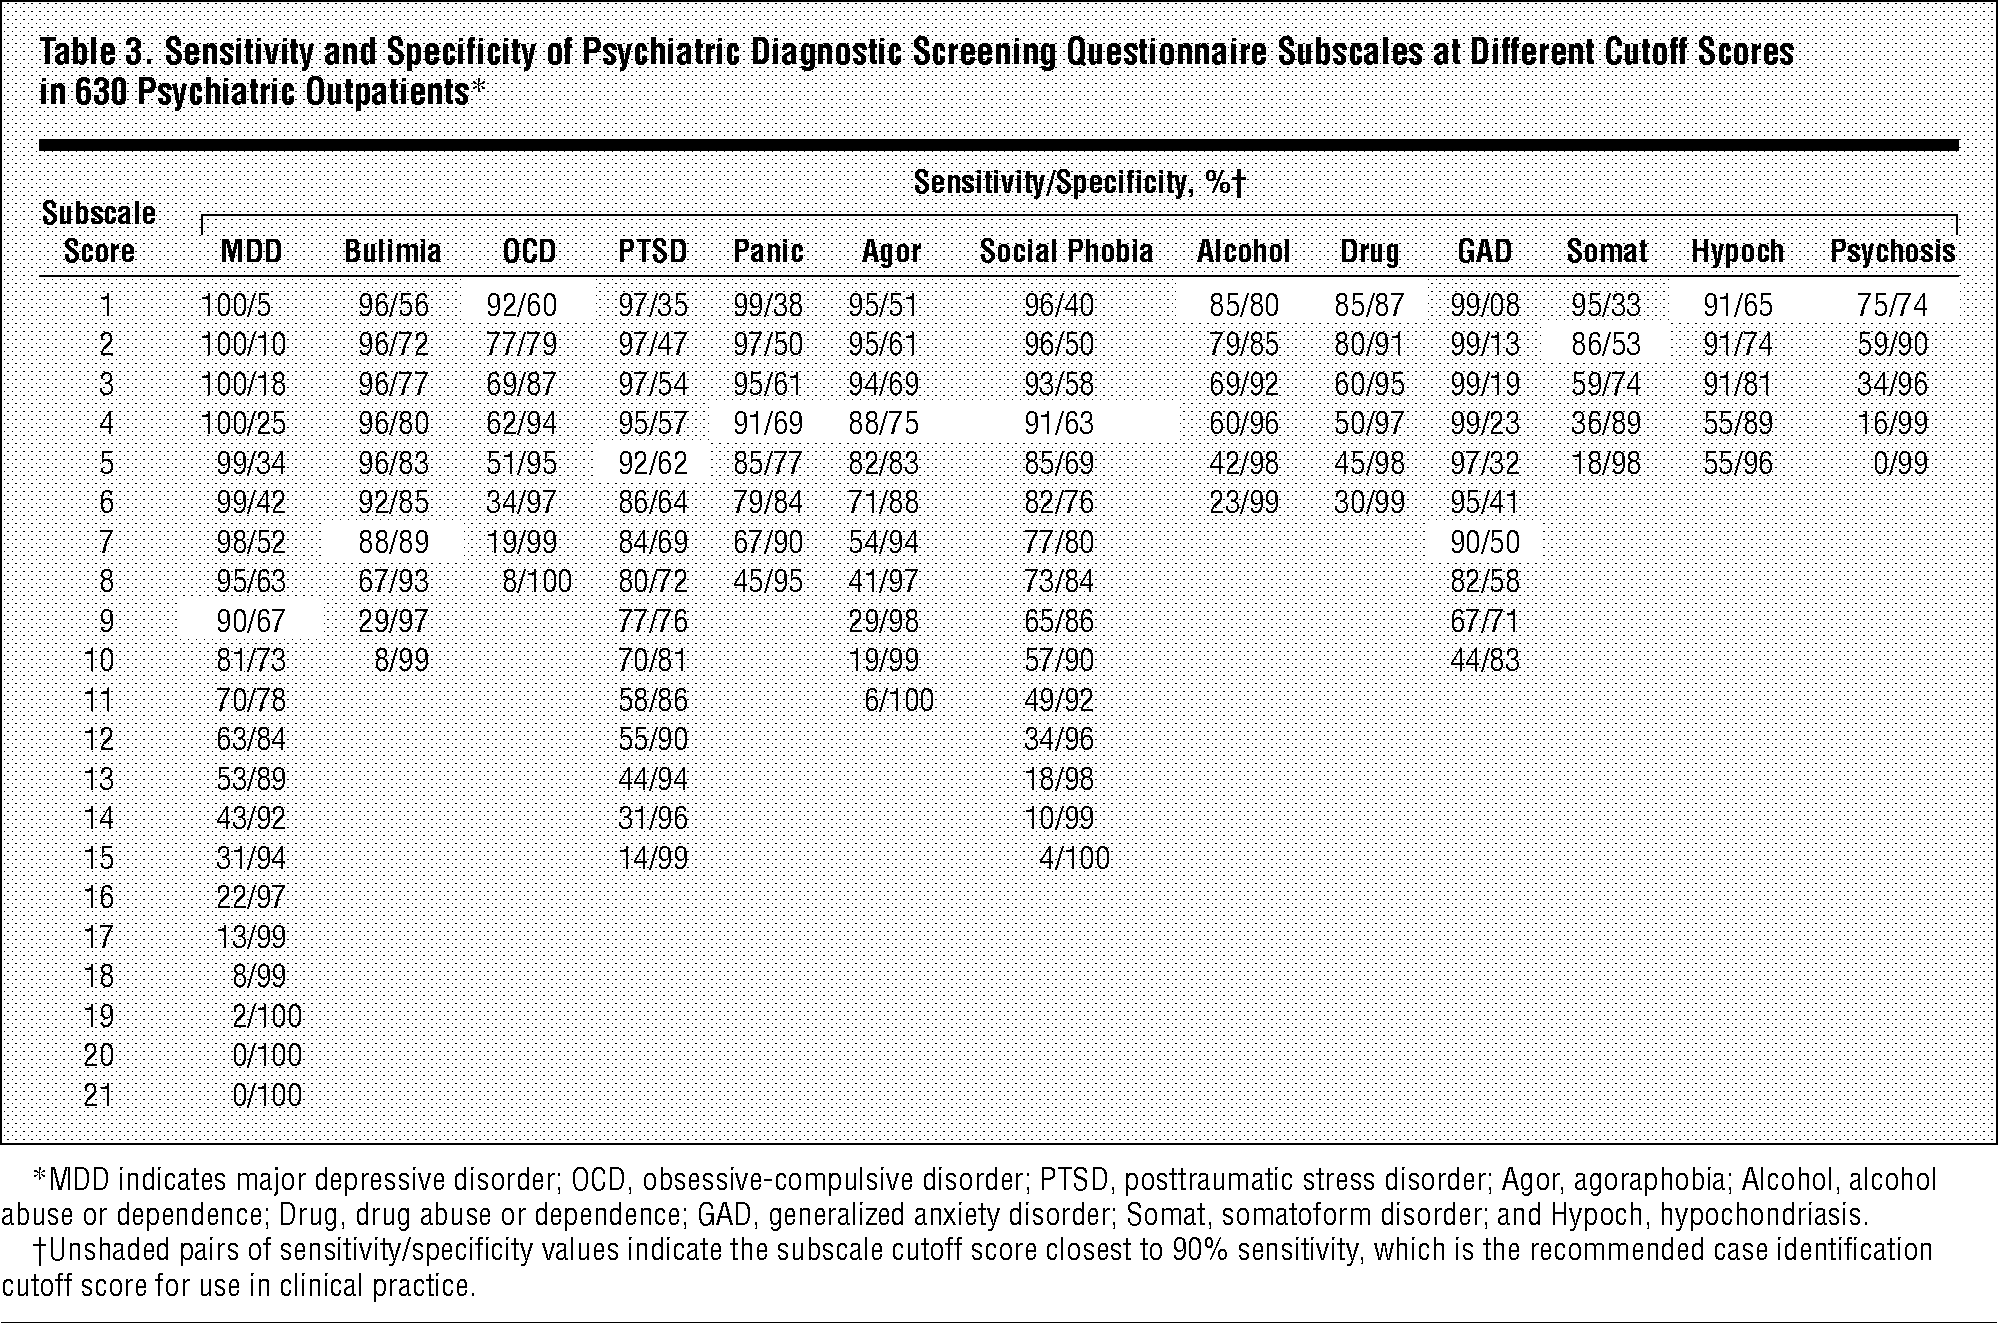 Sensitivity And Specificity Of Psychiatric Diagnostic Screening Questionnaire Subscales At Different Cutoff Scores In 630